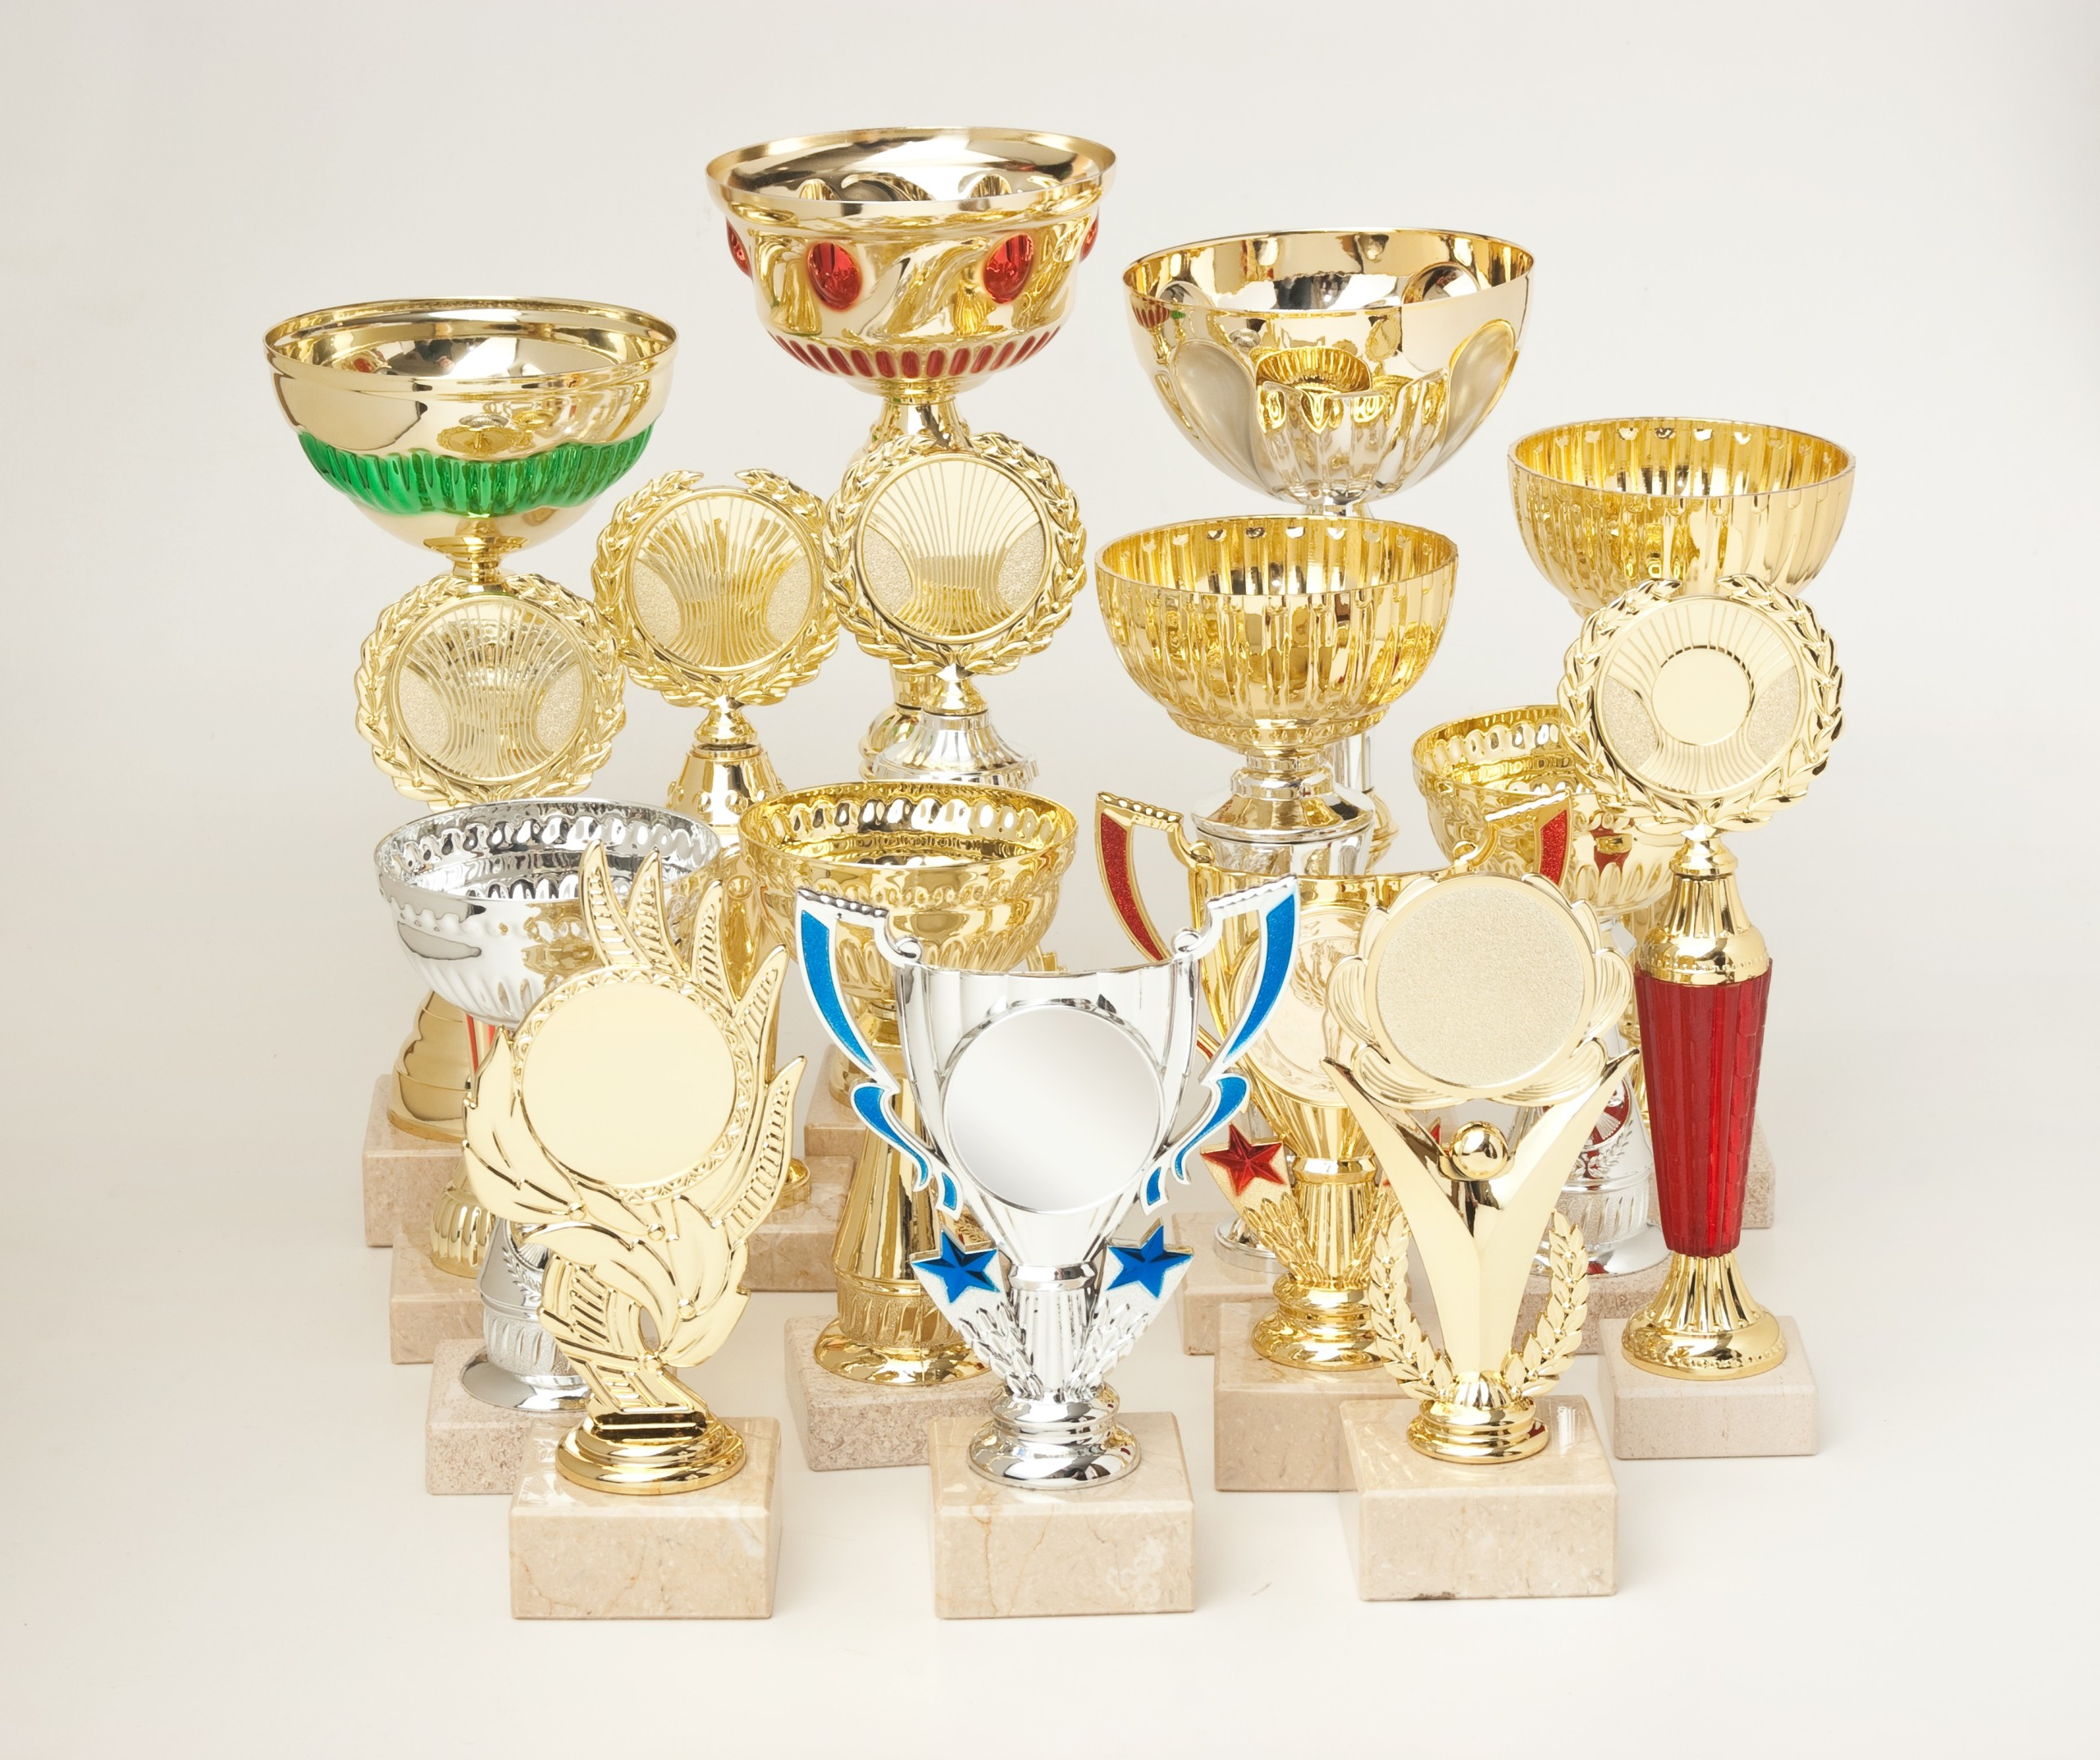 many trophies